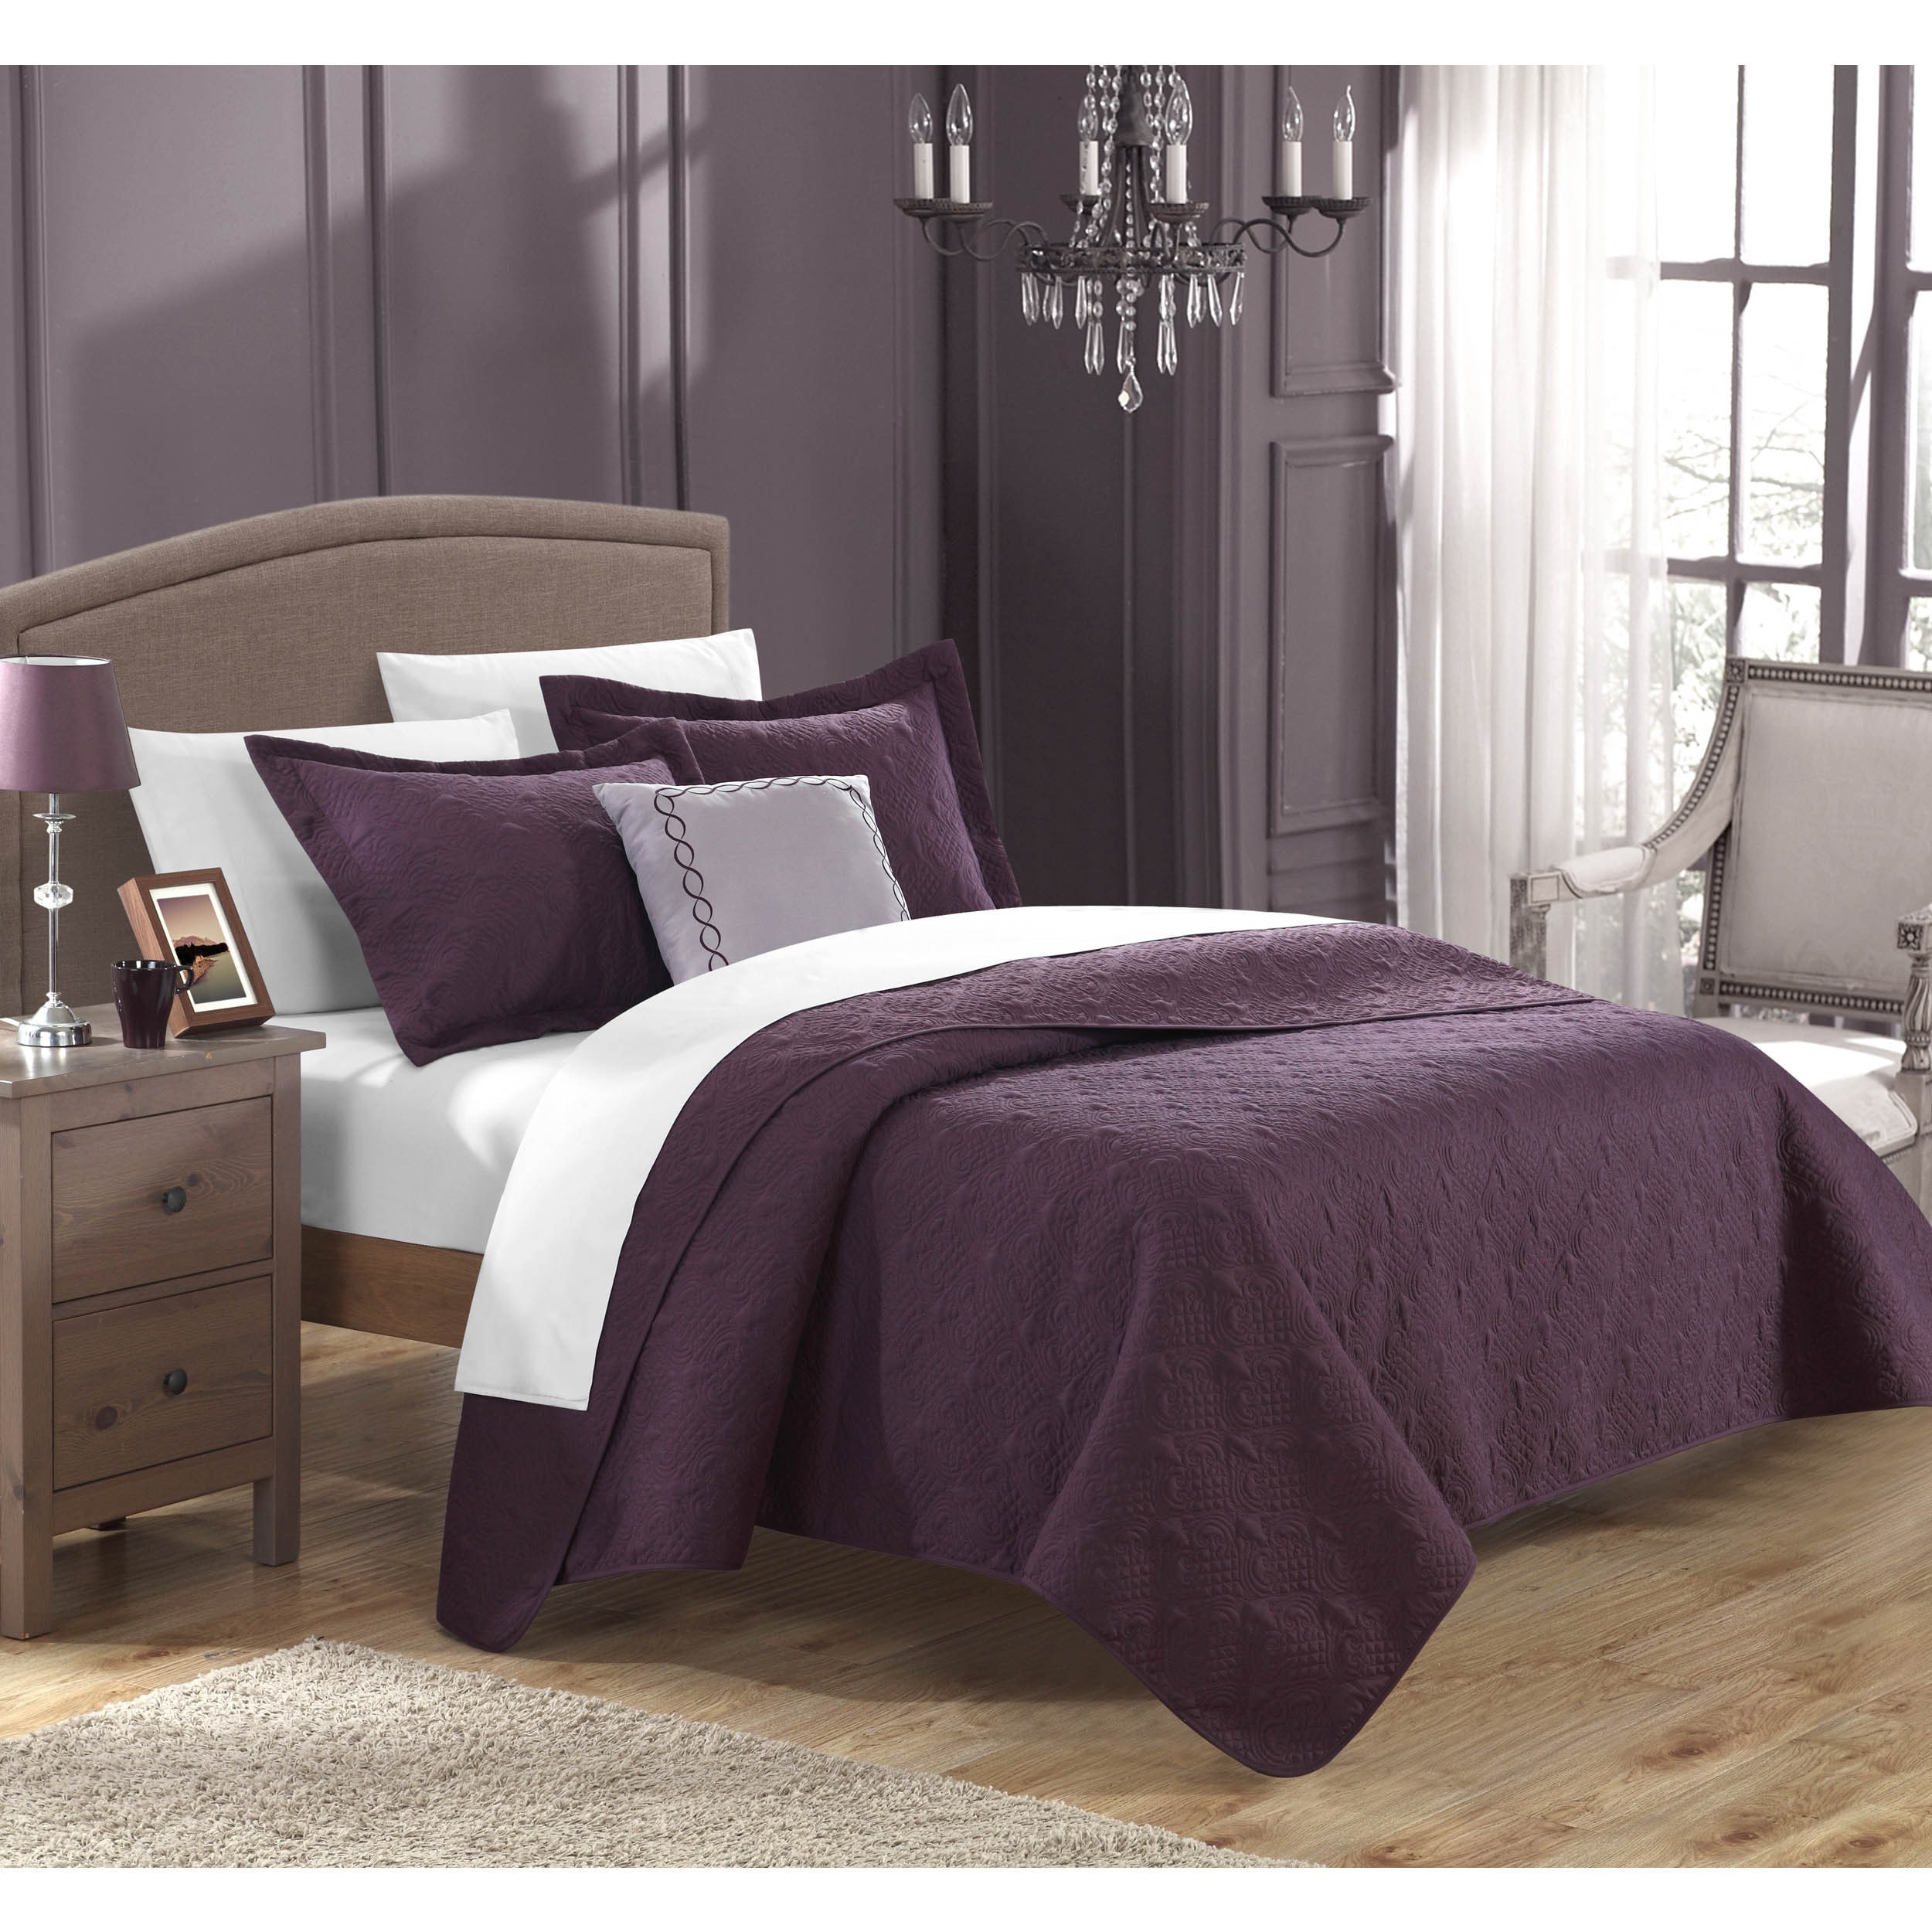 pretty bedroom king and plum bedding inserts deep cover twin of silver cotton sheets quilt comforters full mint set purple comforter covers black lime light size sets cabinet dark duvet walmart nice green grey super duvets white winsome lilac